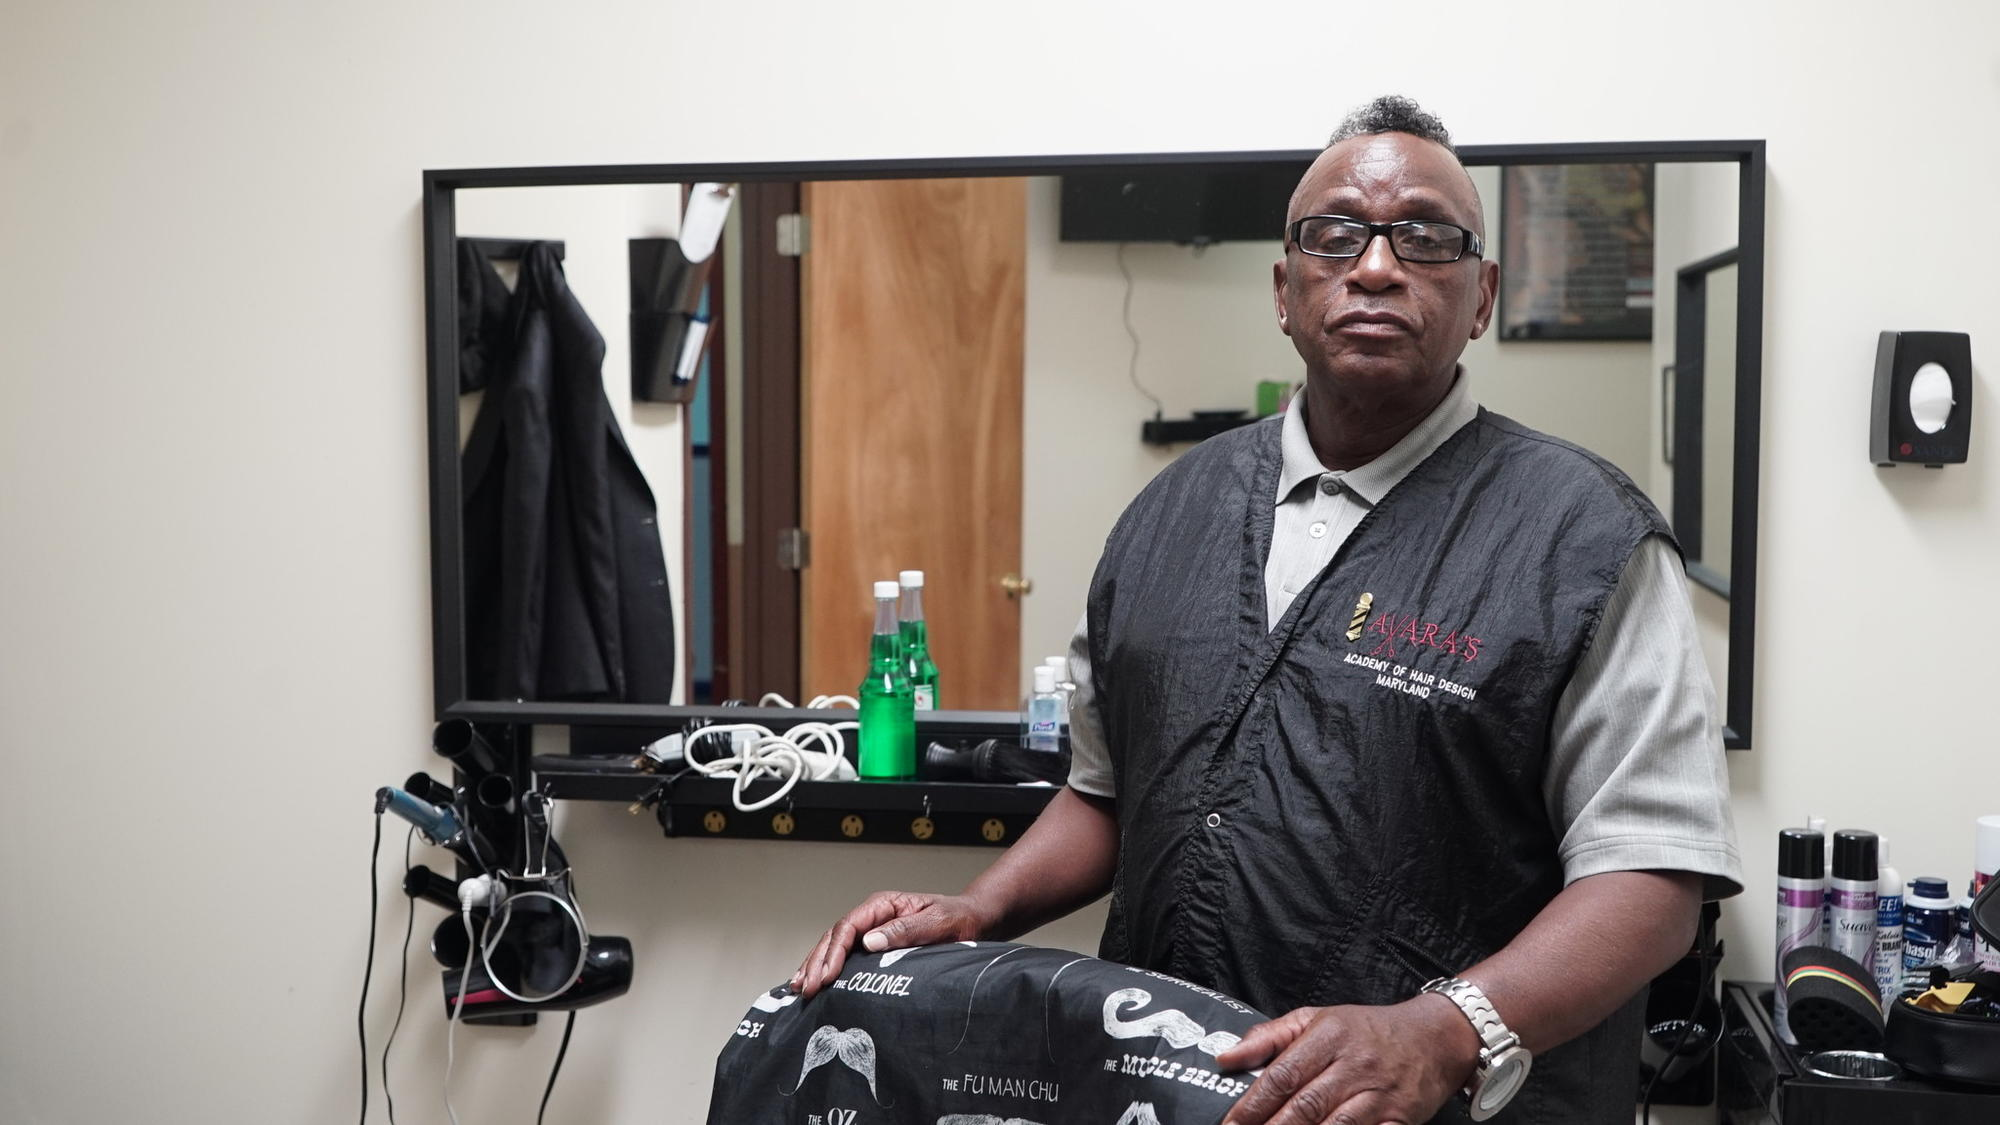 Baltimores Homeless Veterans Get Their Own Free Barber Shop